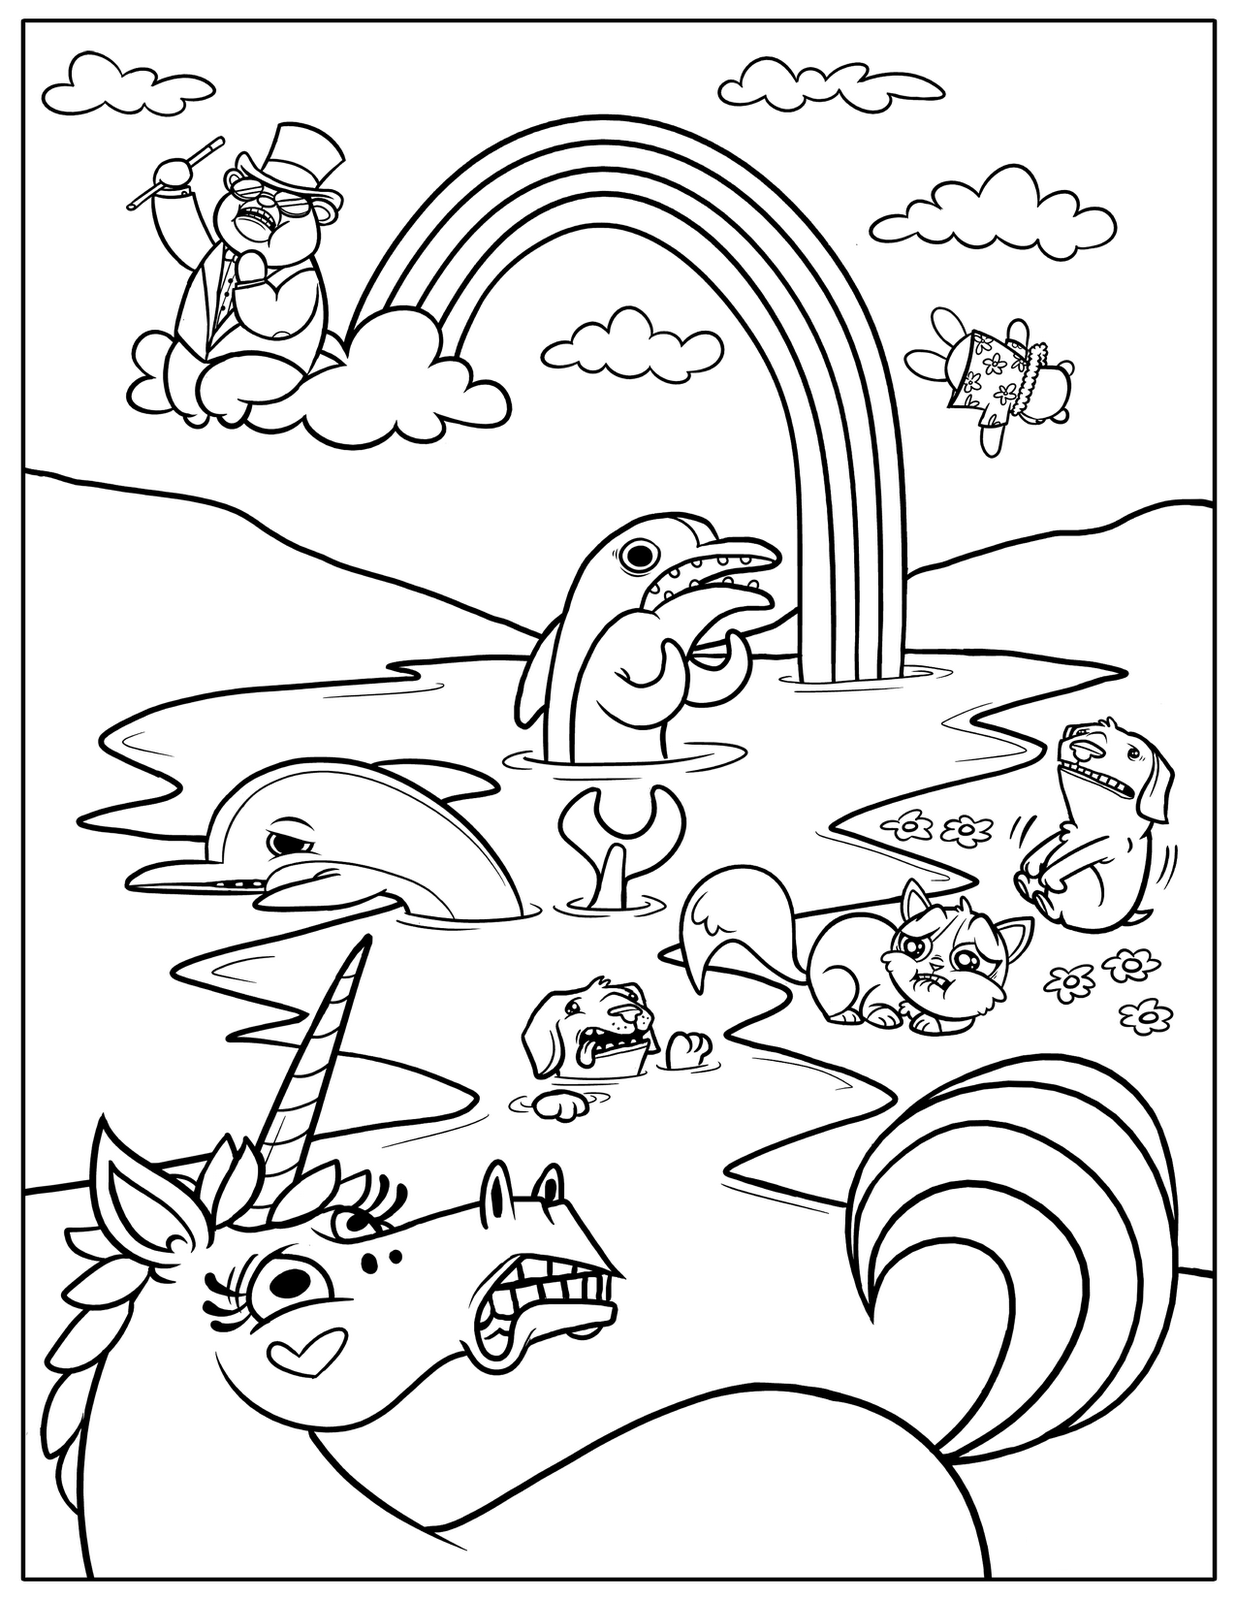 Colouring worksheets for kindergarten free printable Coloring book for kinder